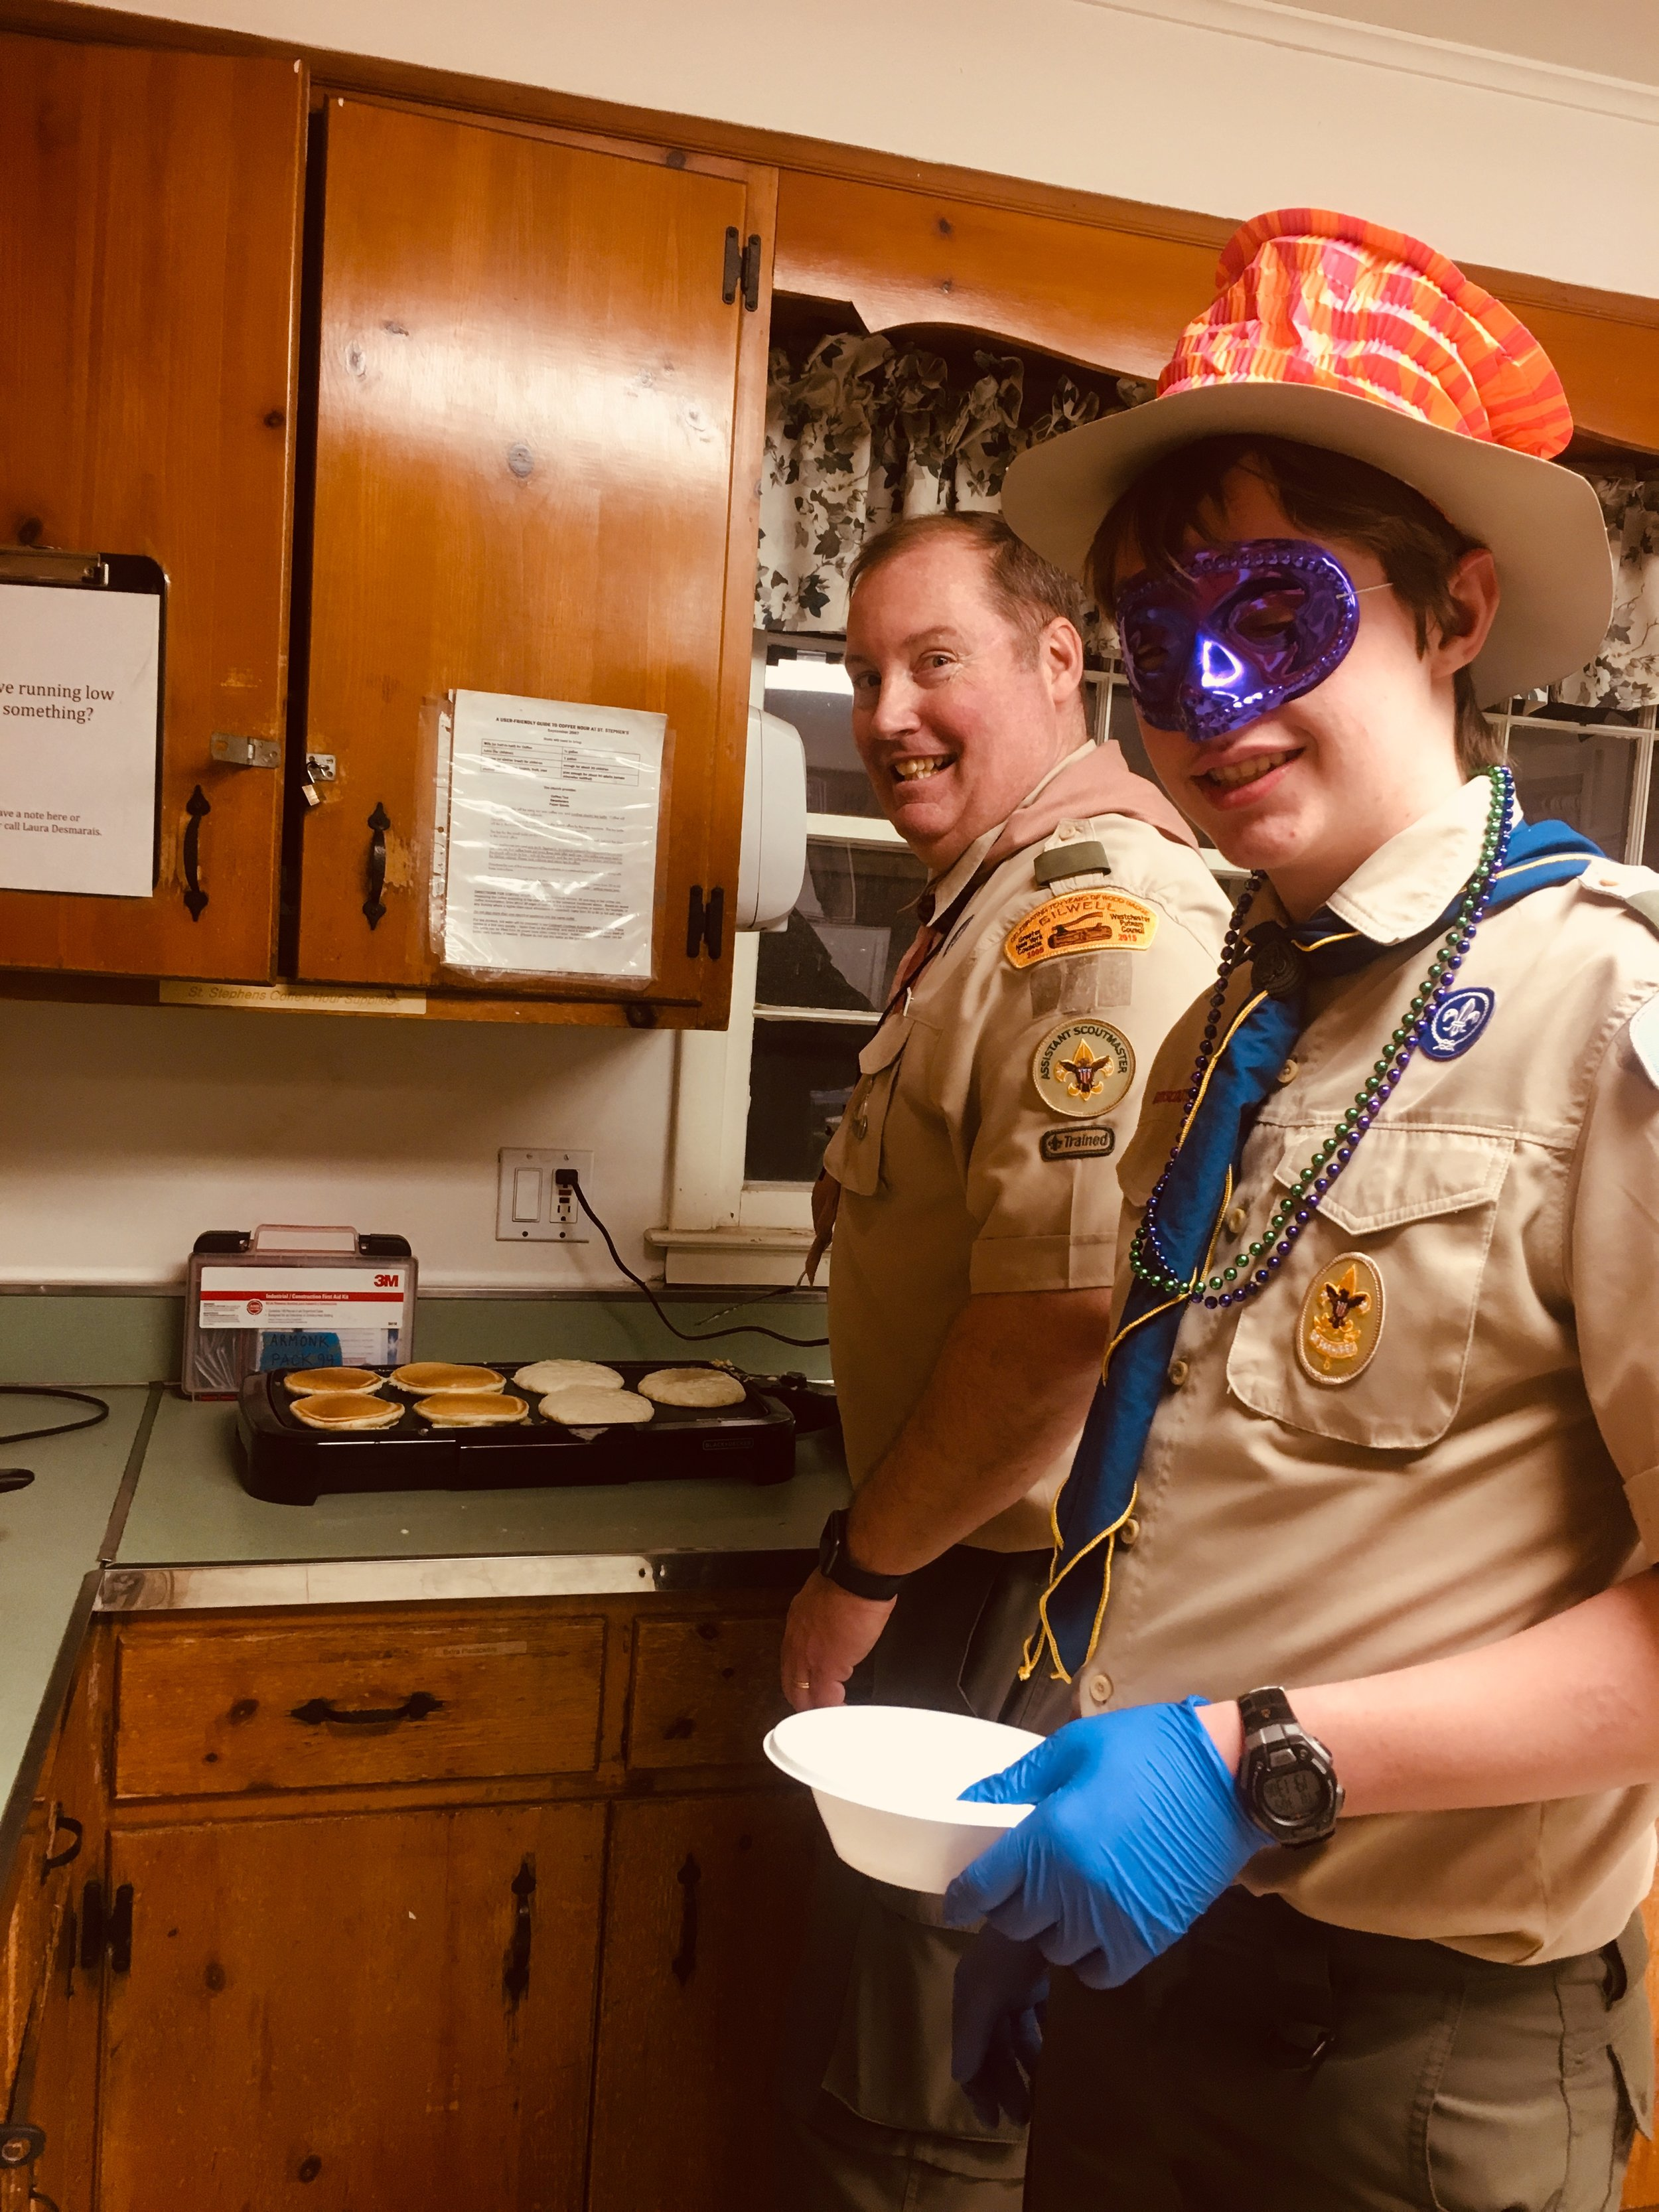 …and our scout chefs were in the spirit of the day!